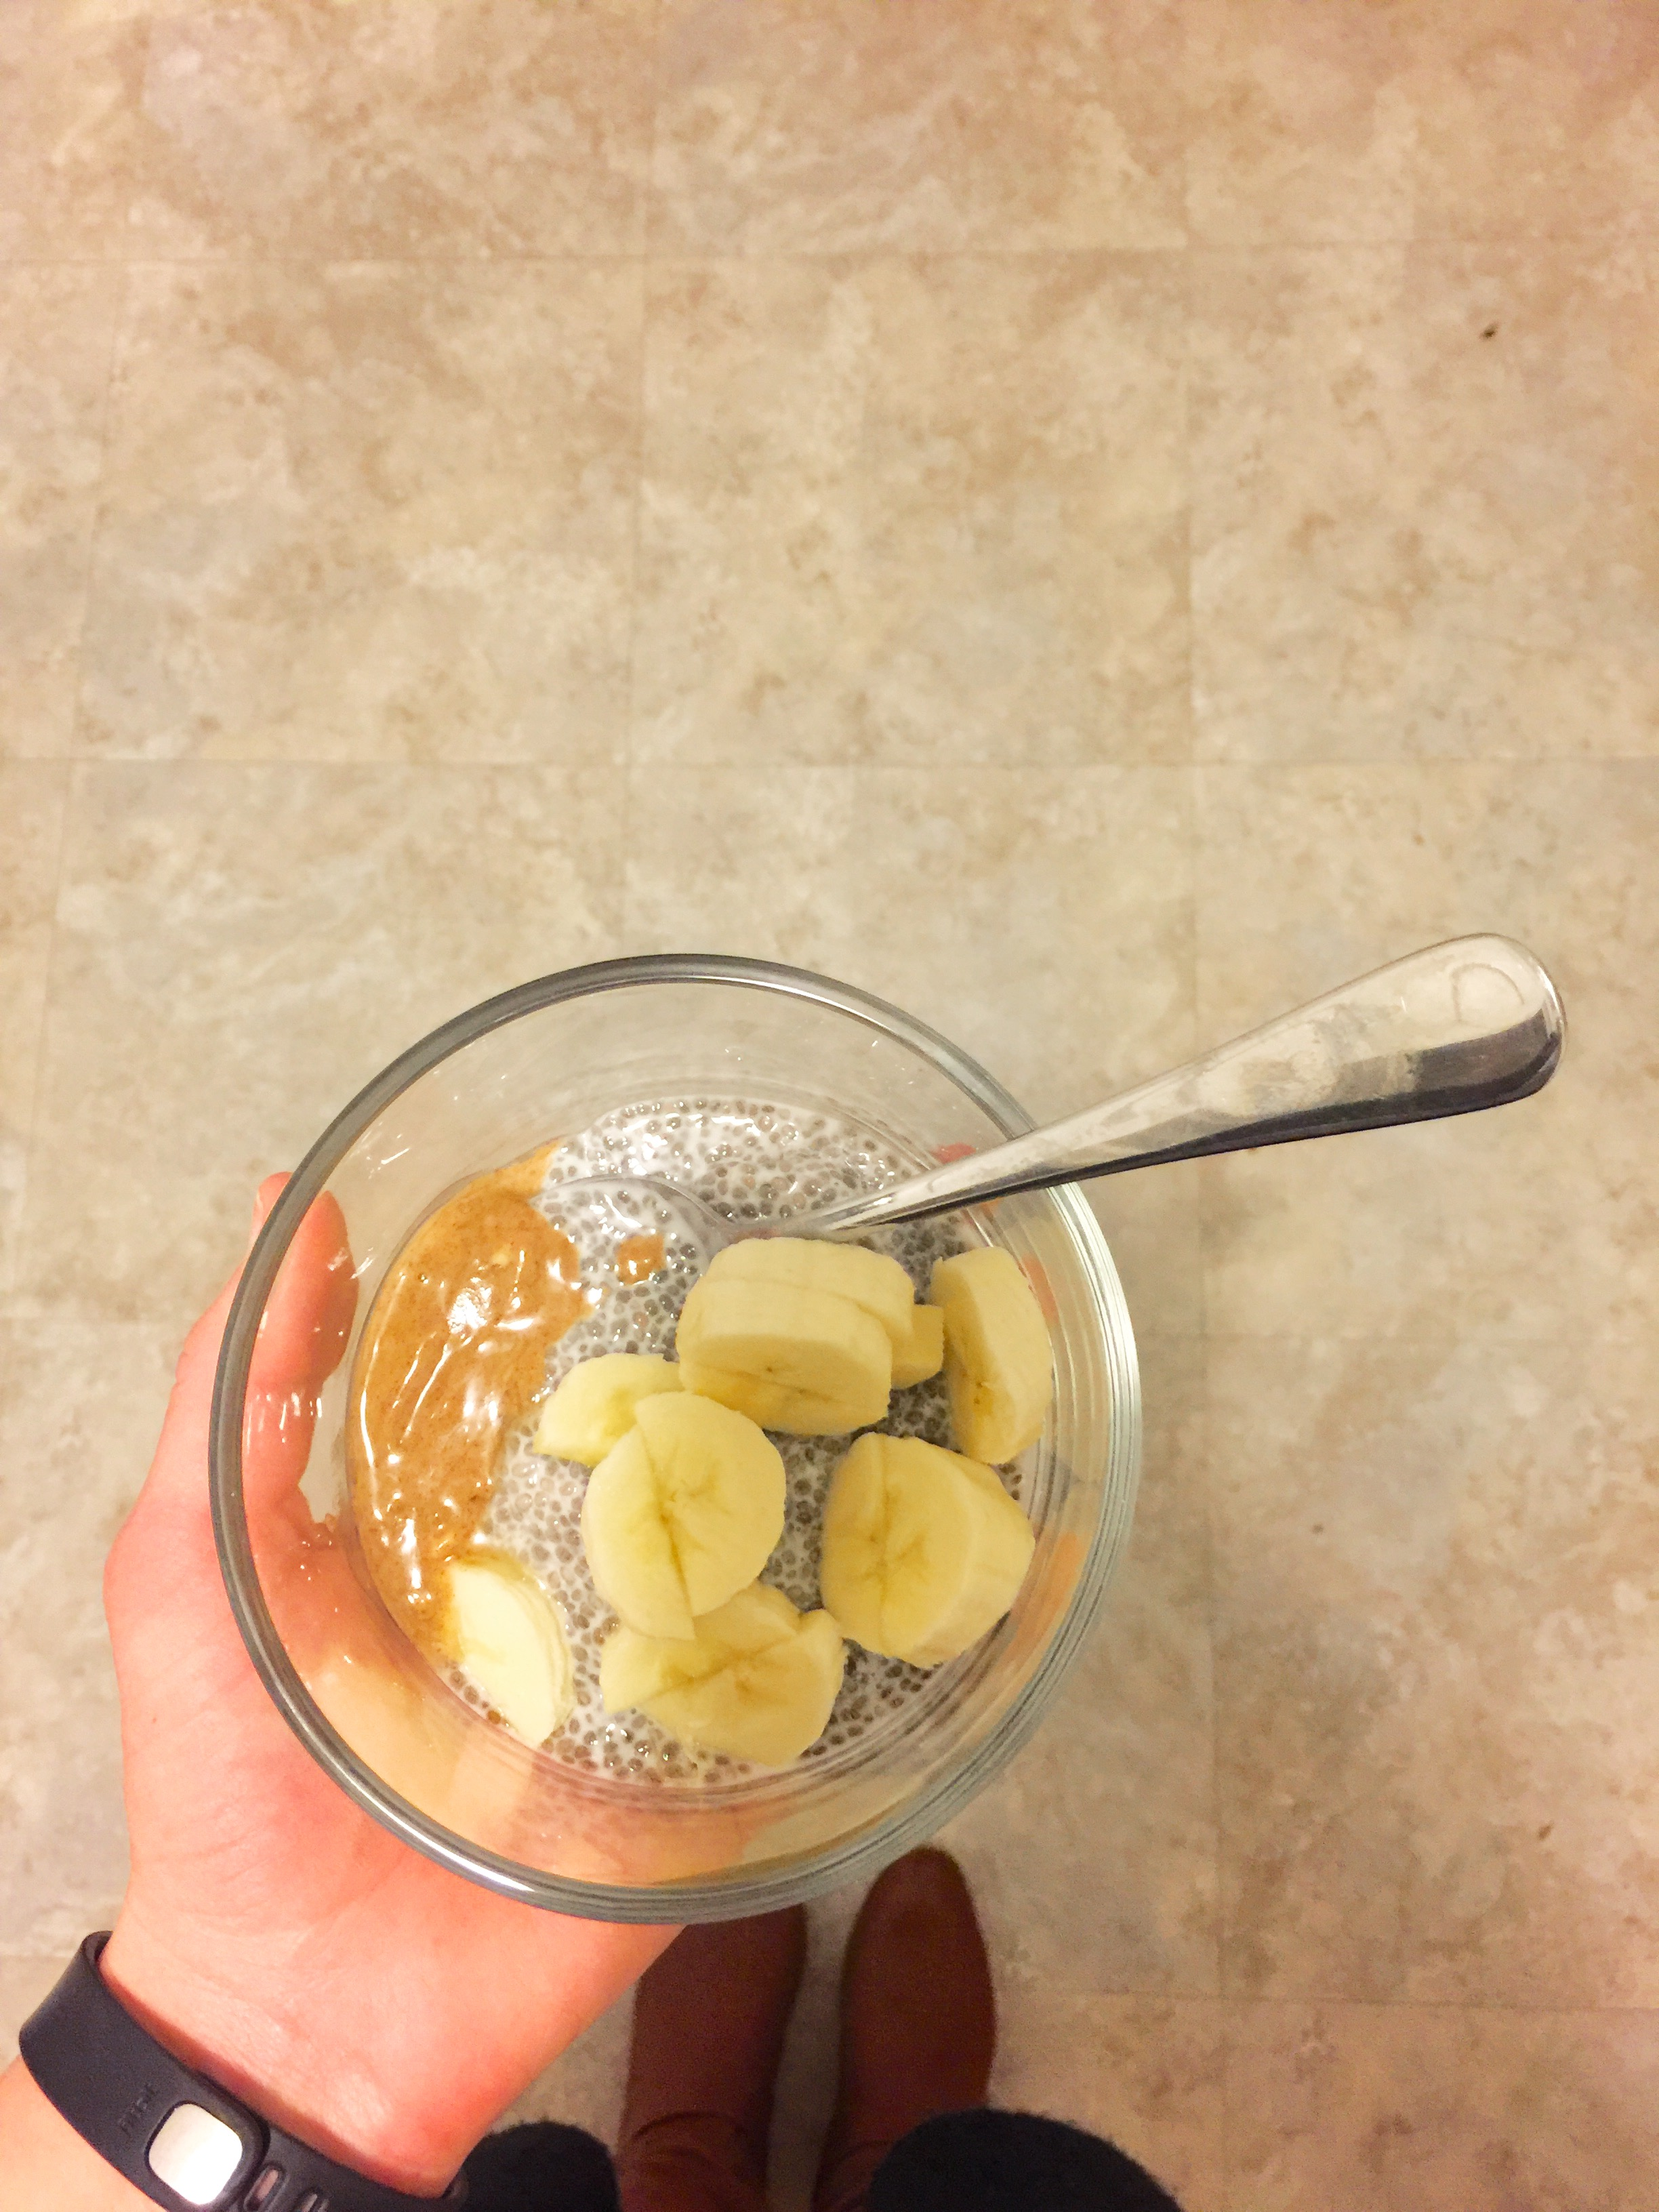 Chia pudding with almond butter and banana